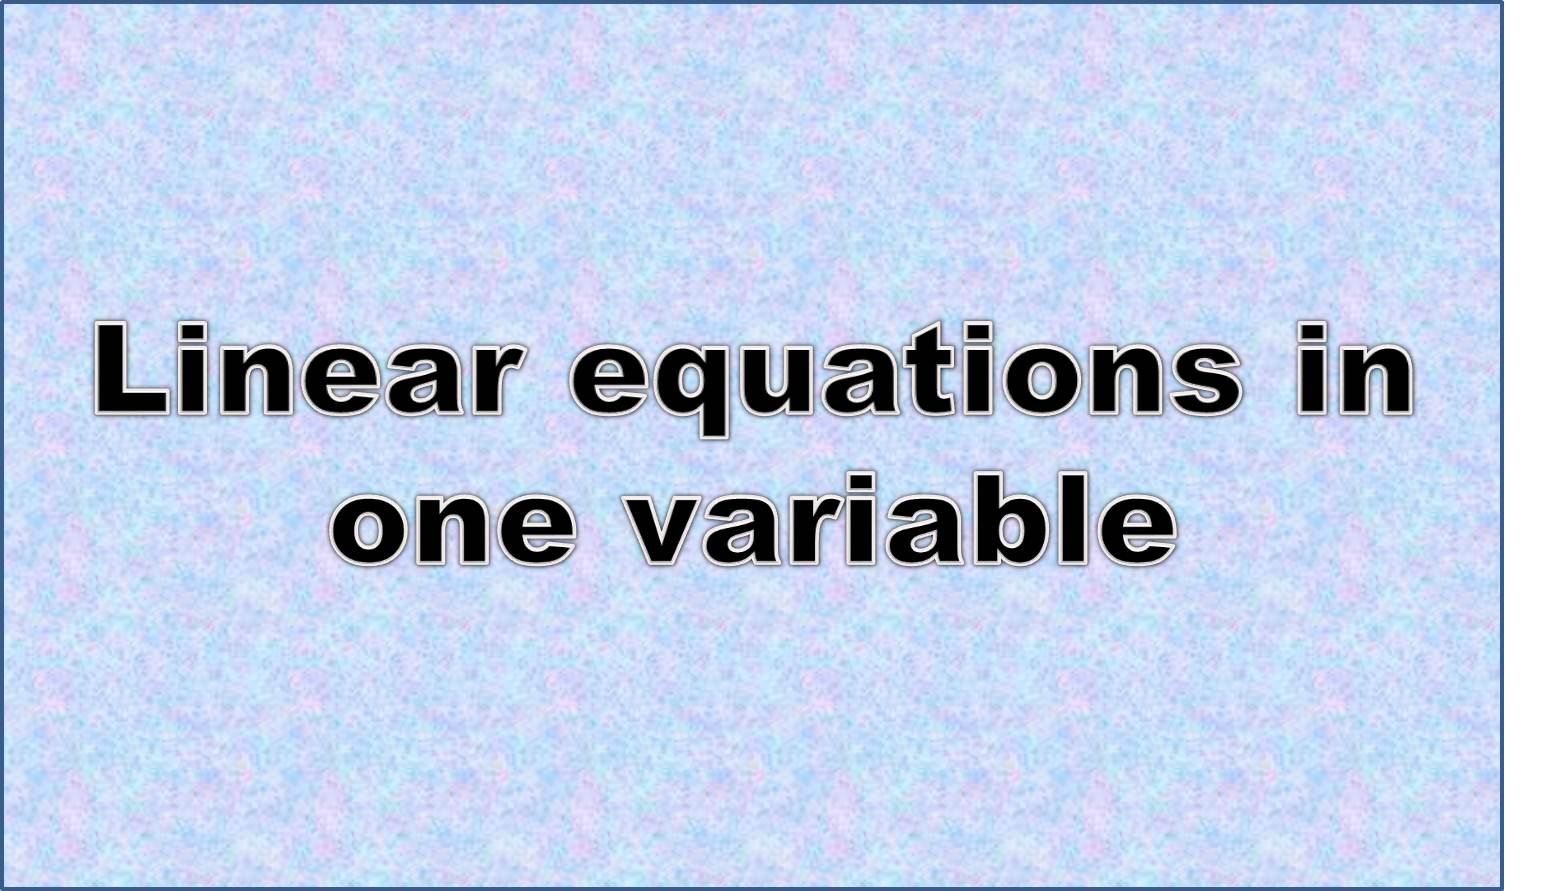 http://study.aisectonline.com/images/Intro to equations with variables on both sides.jpg